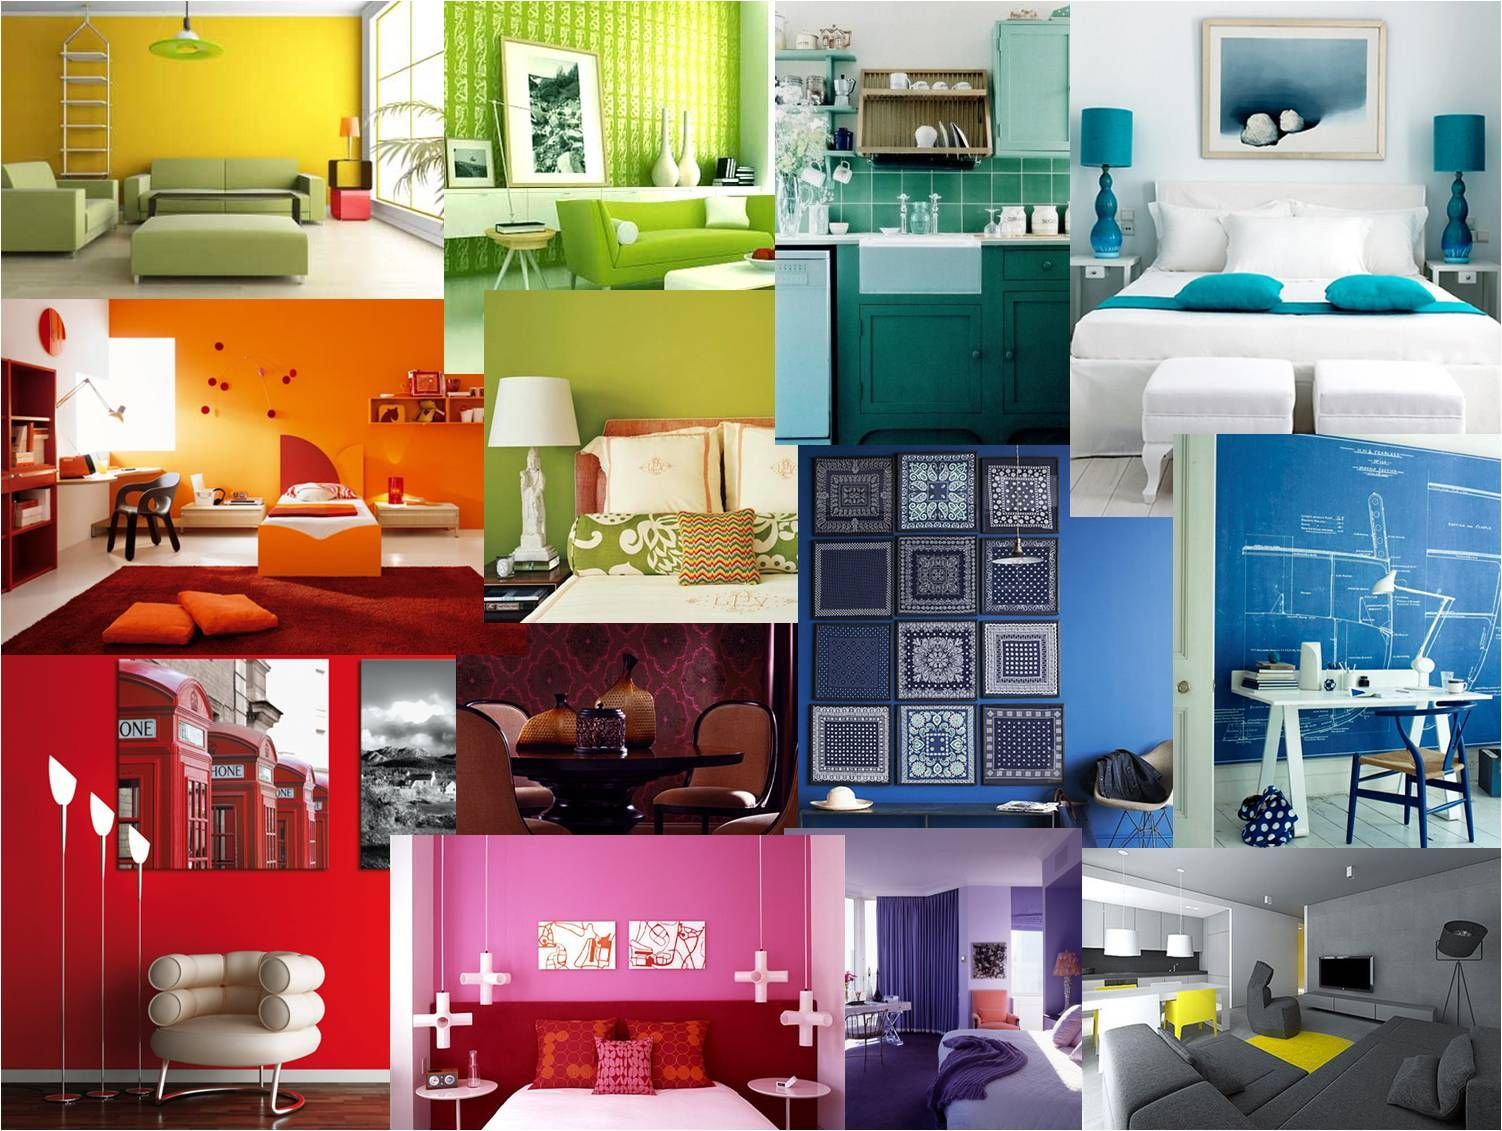 Color Psychology With Images Interior Design School Interior